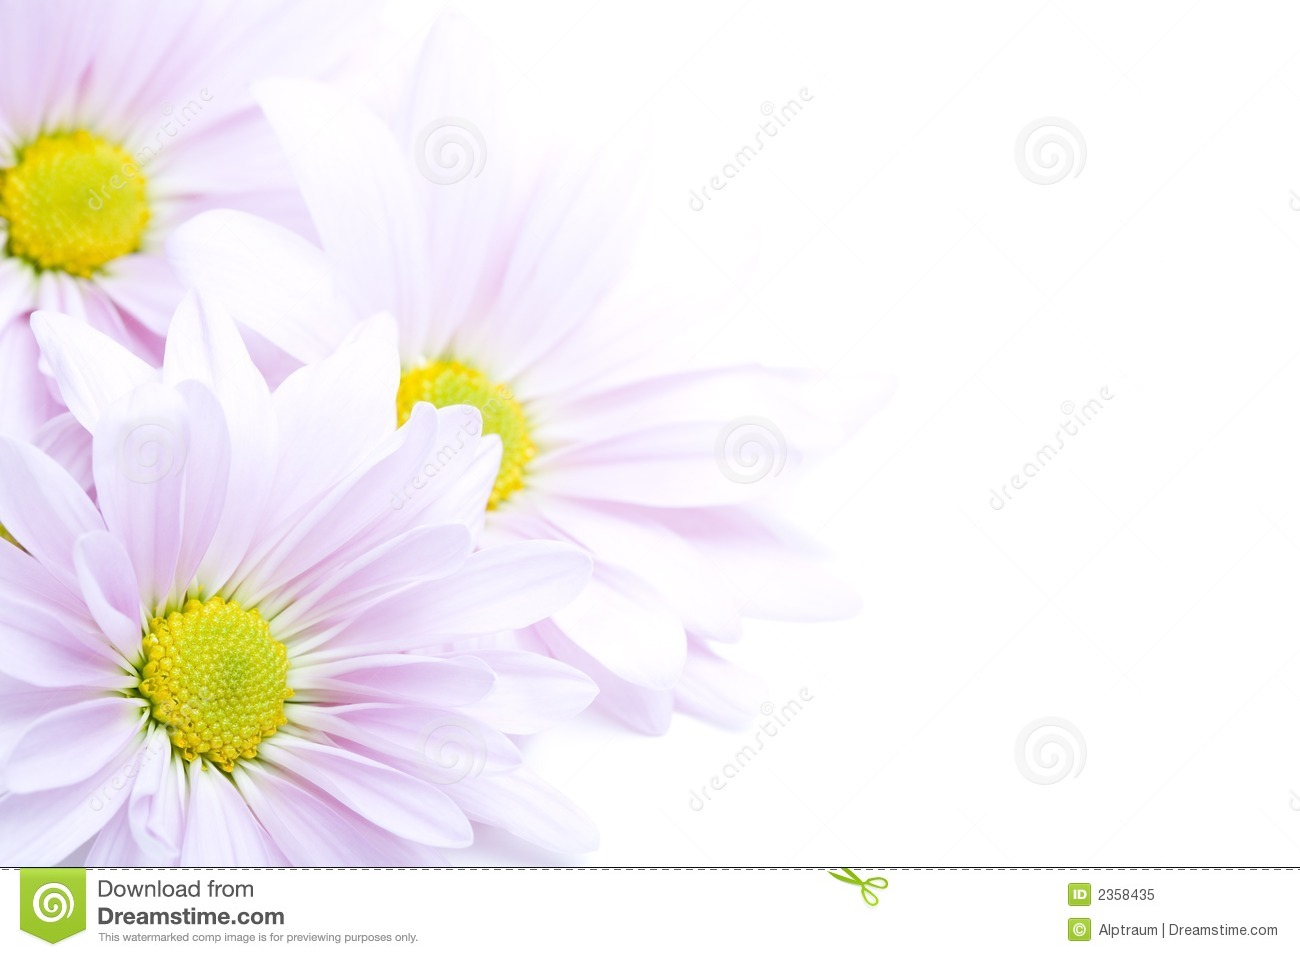 Flowers border - beautiful lanvender daisies highkey on white.